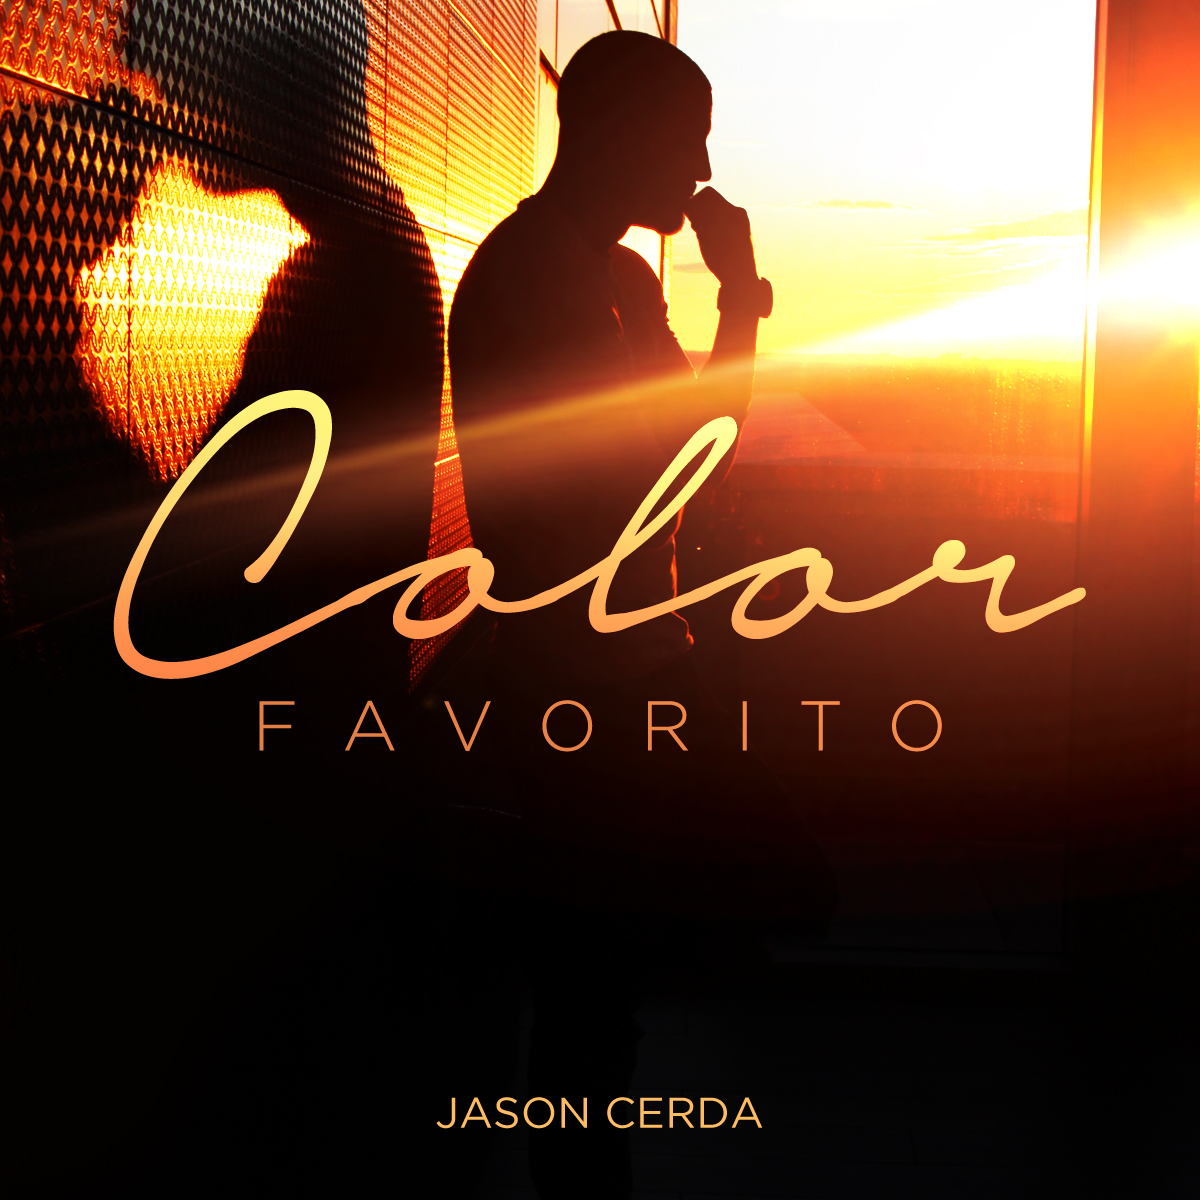 """Jason Cerda is breaking into the latin music industry with his single """"Color Favorito"""""""